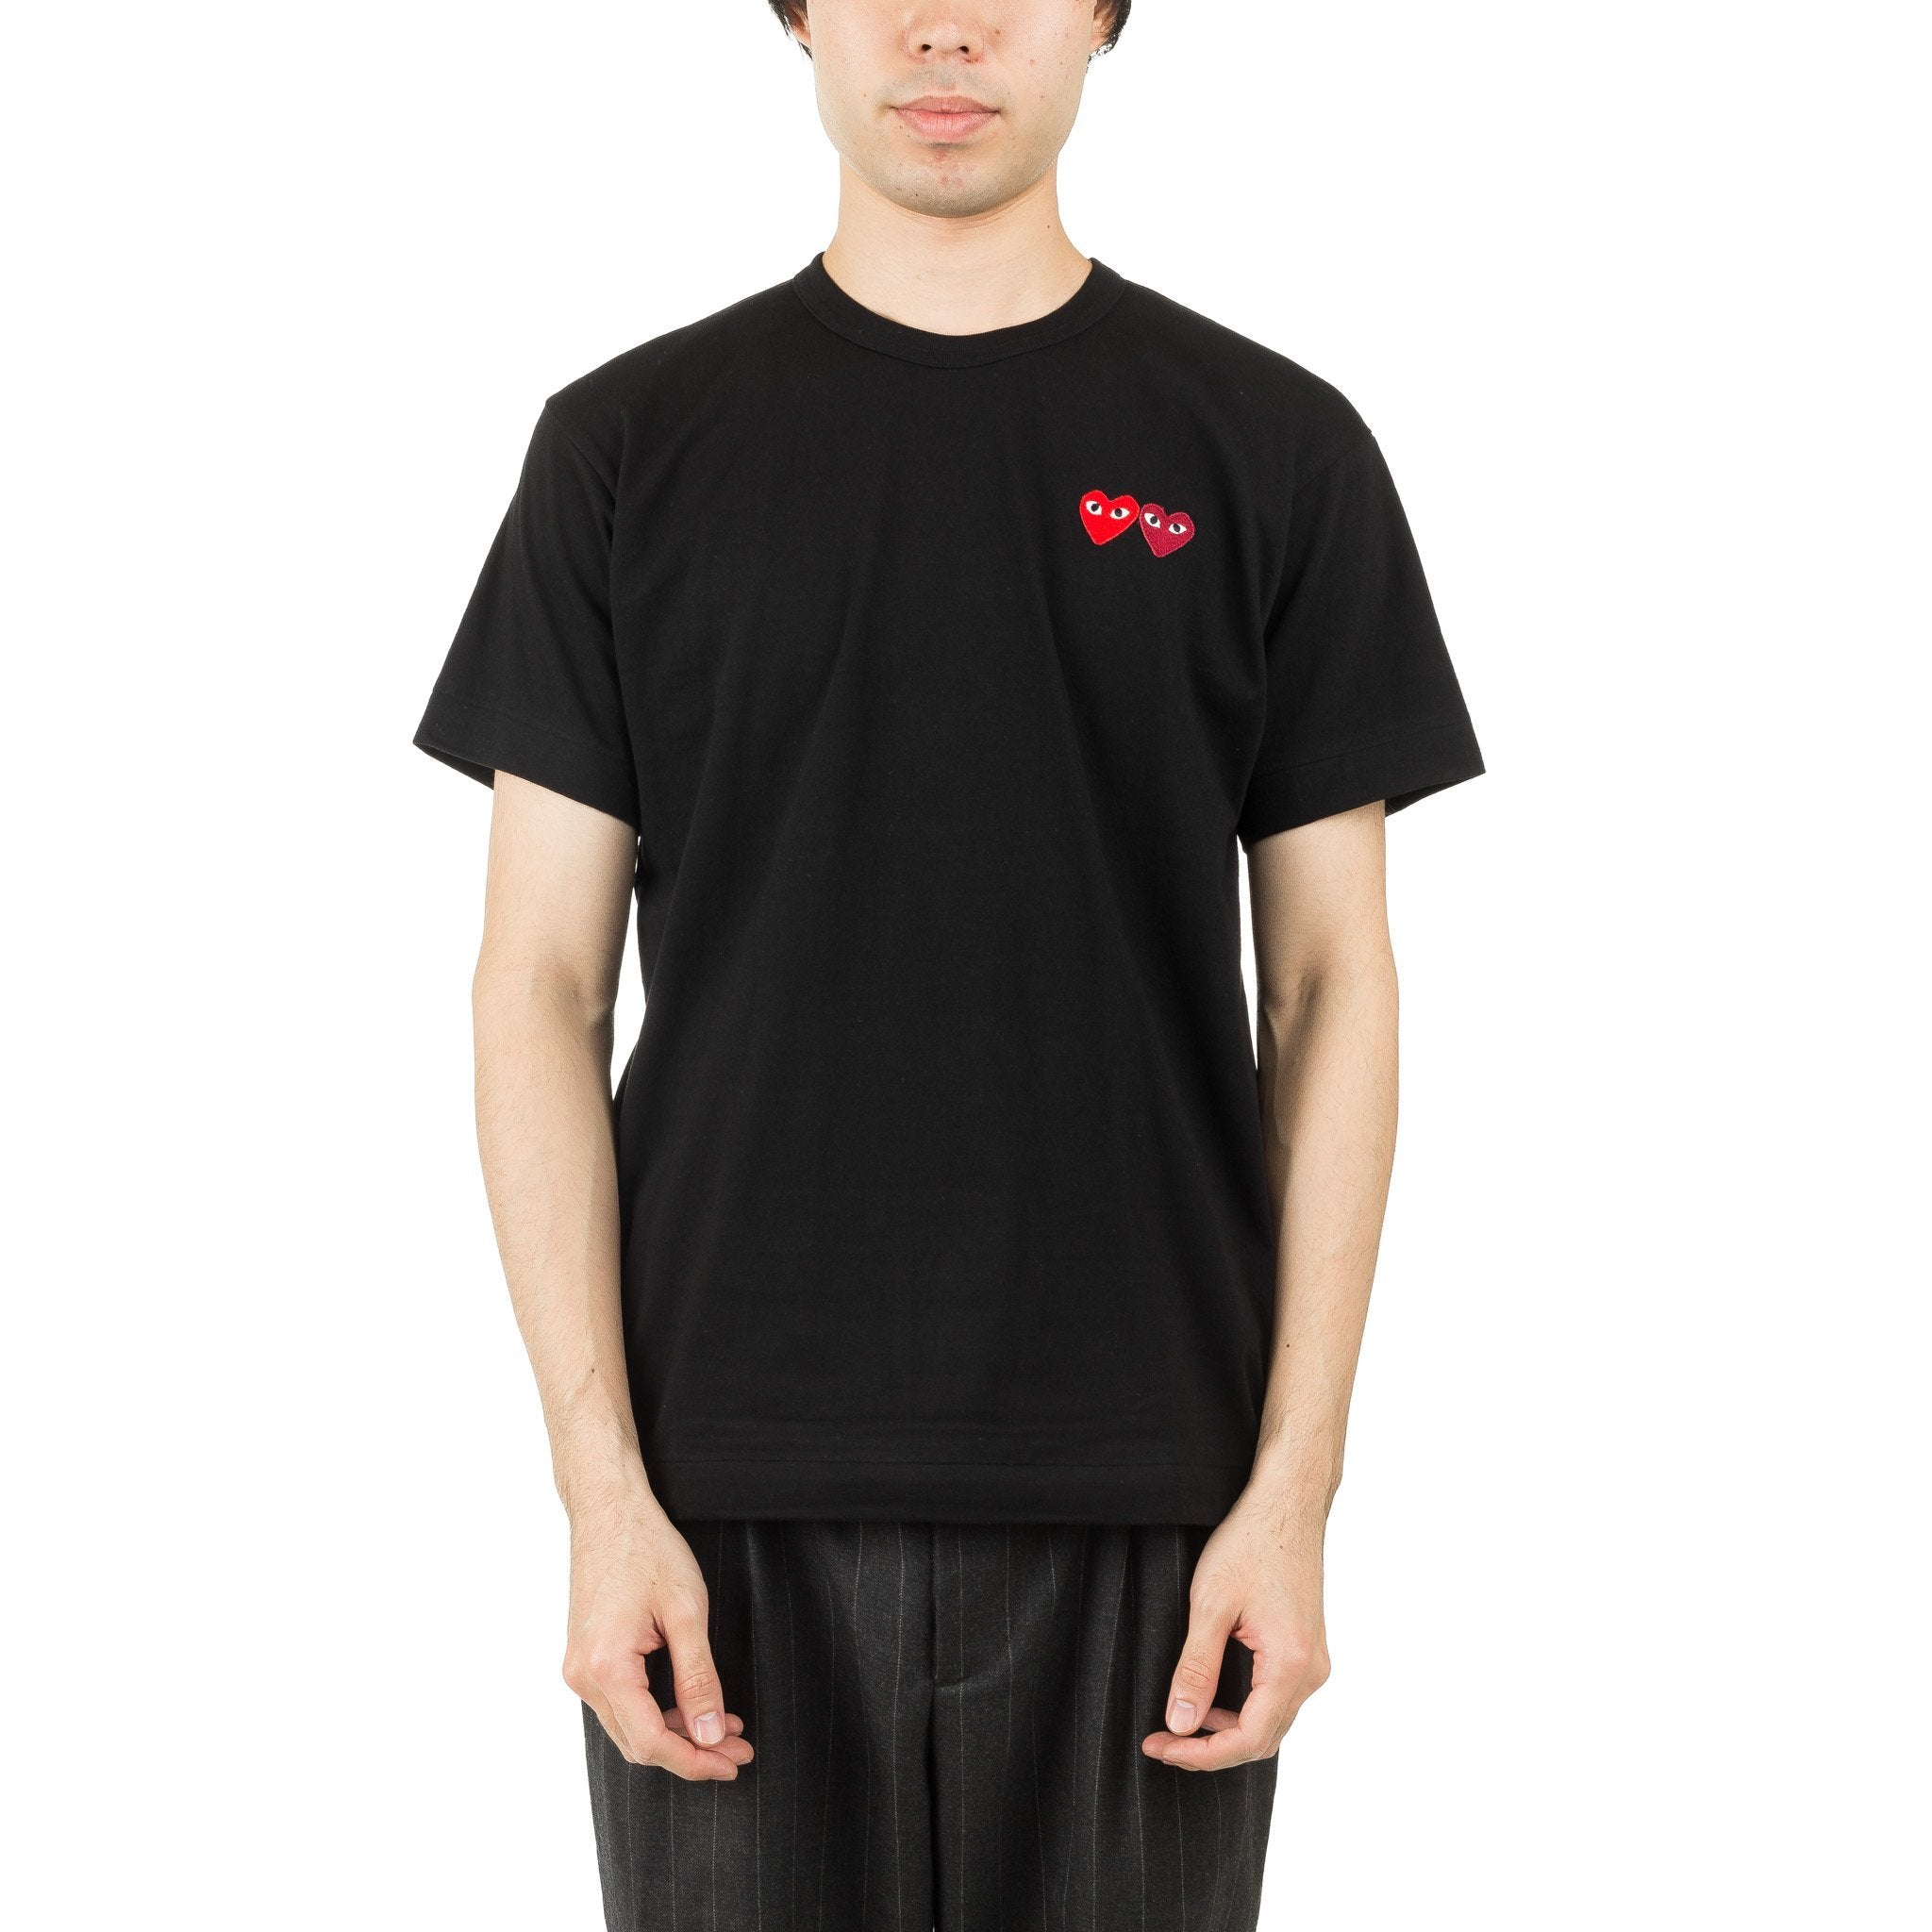 HEART DOUBLE LOGO AZ-T226-051-1 Tee Black